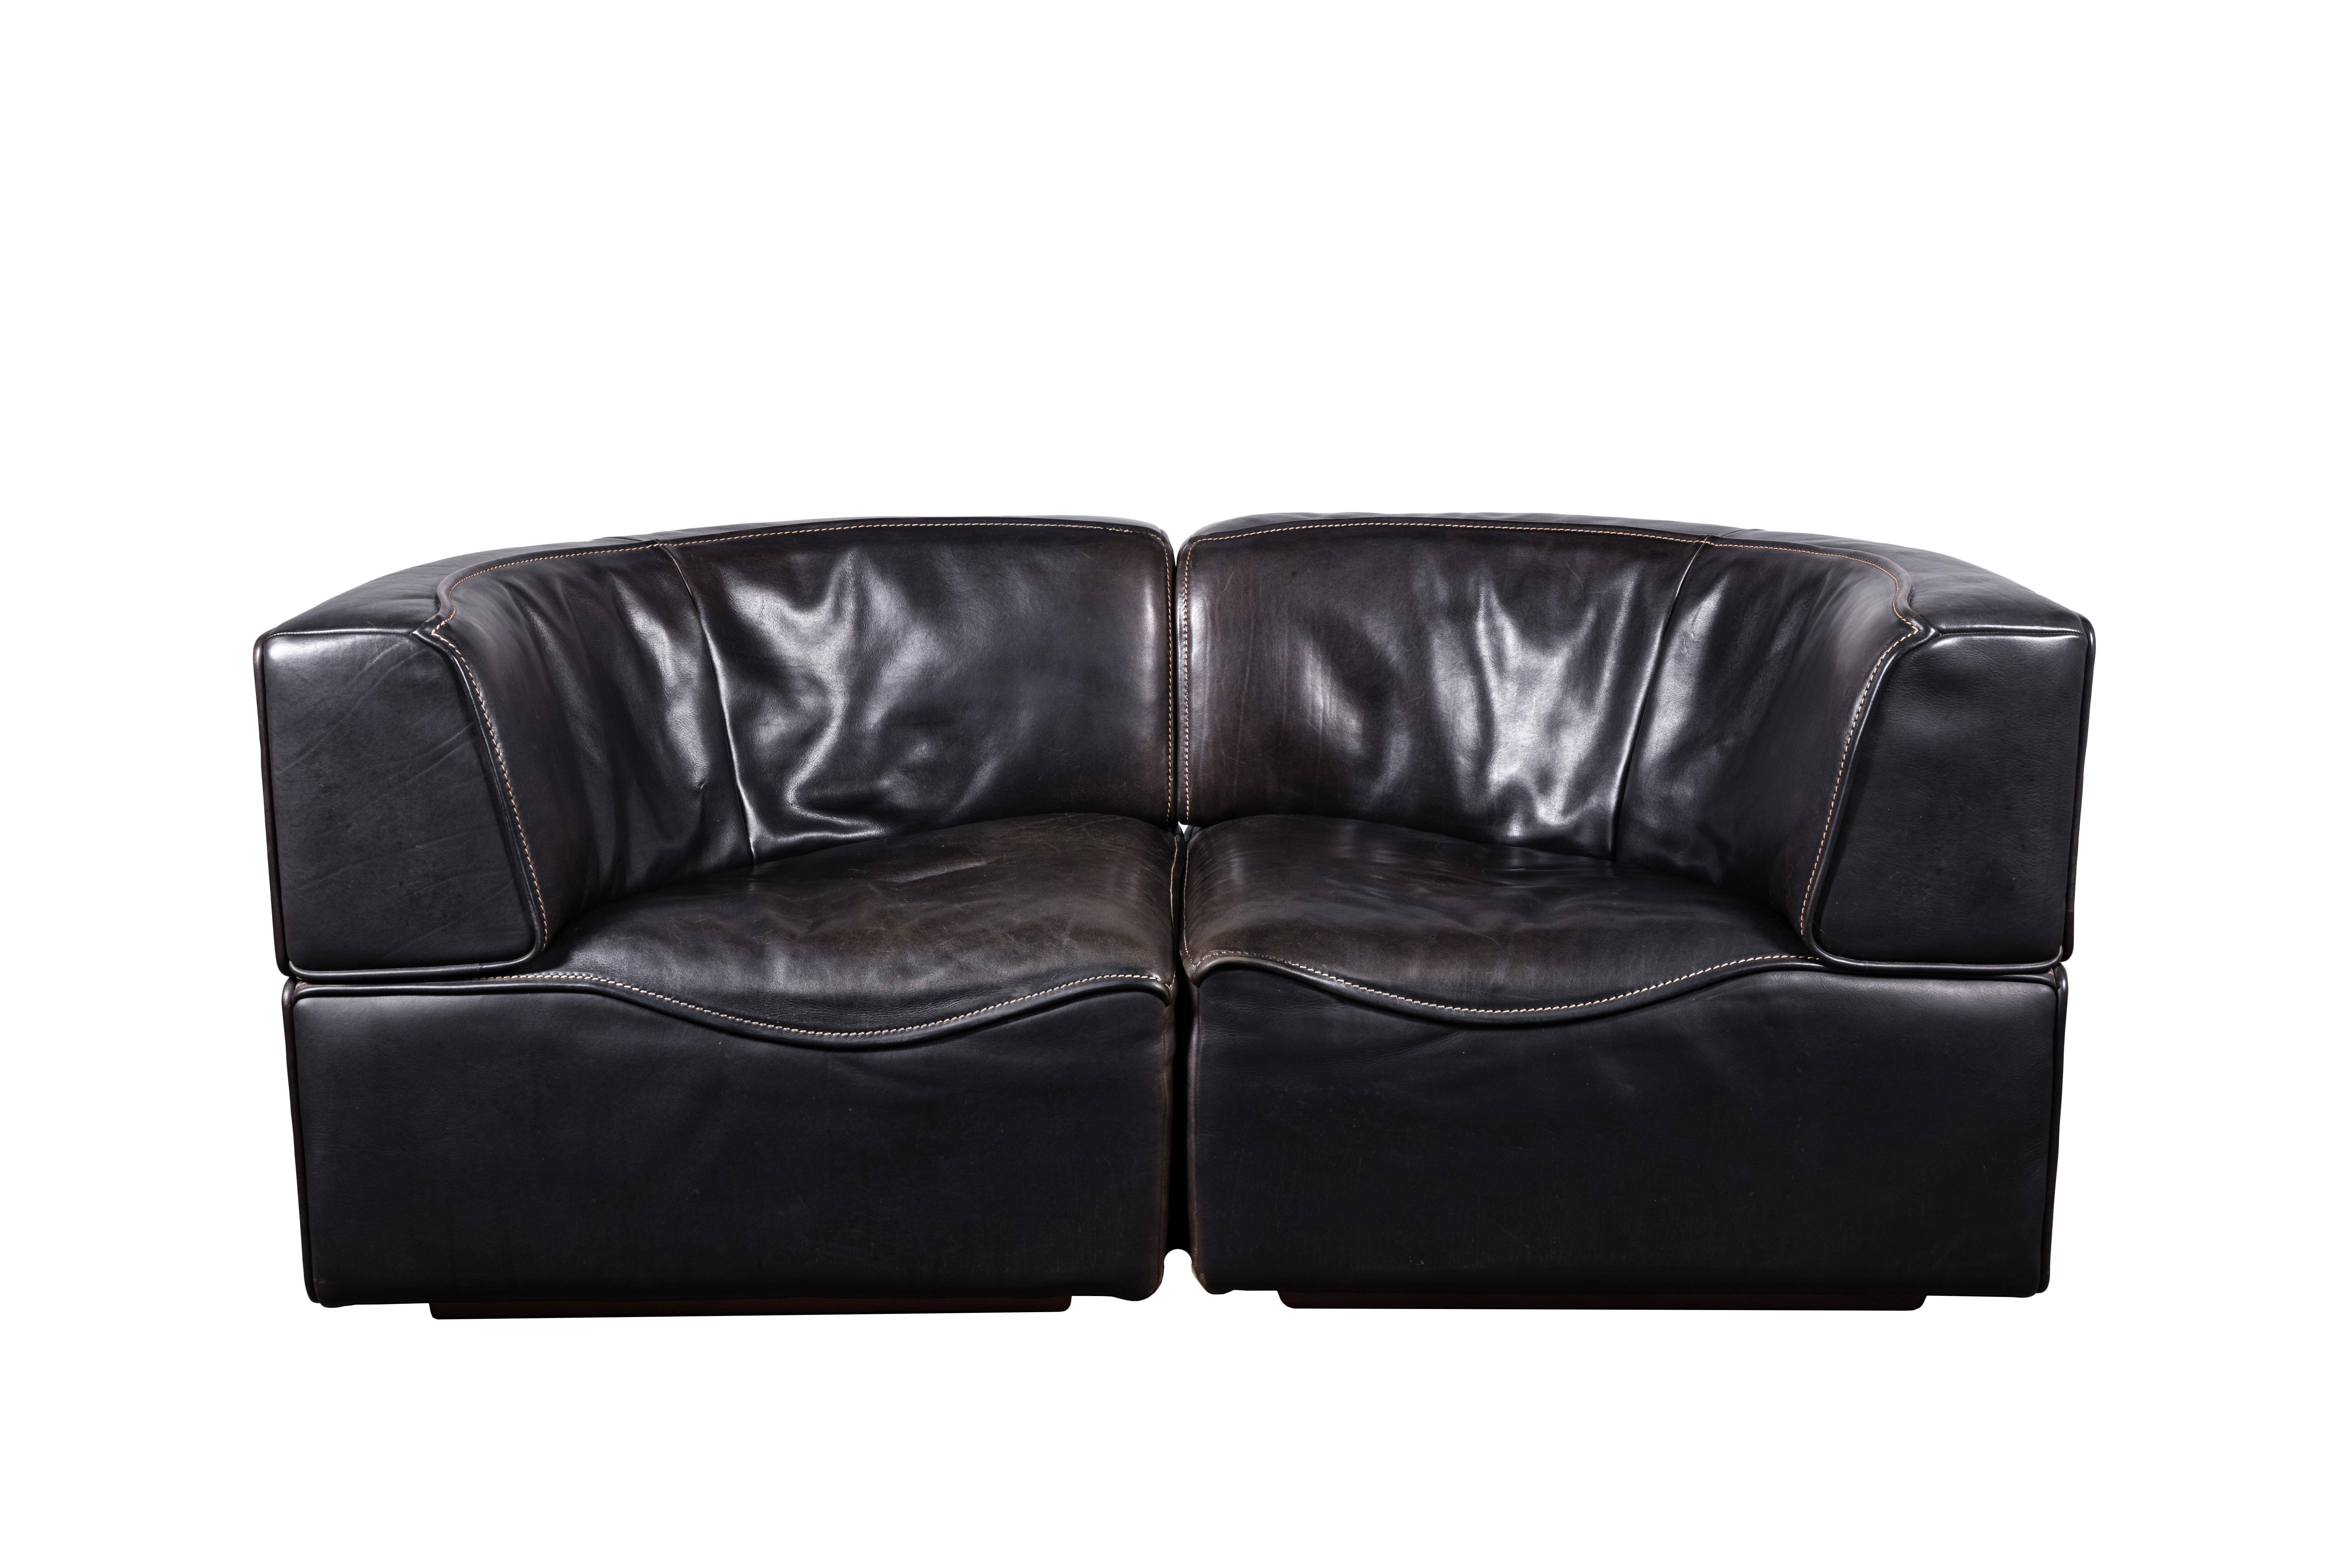 1970s De Sede DS-15 Swiss Sectional Sofa Loveseat in Patinated Black Leather